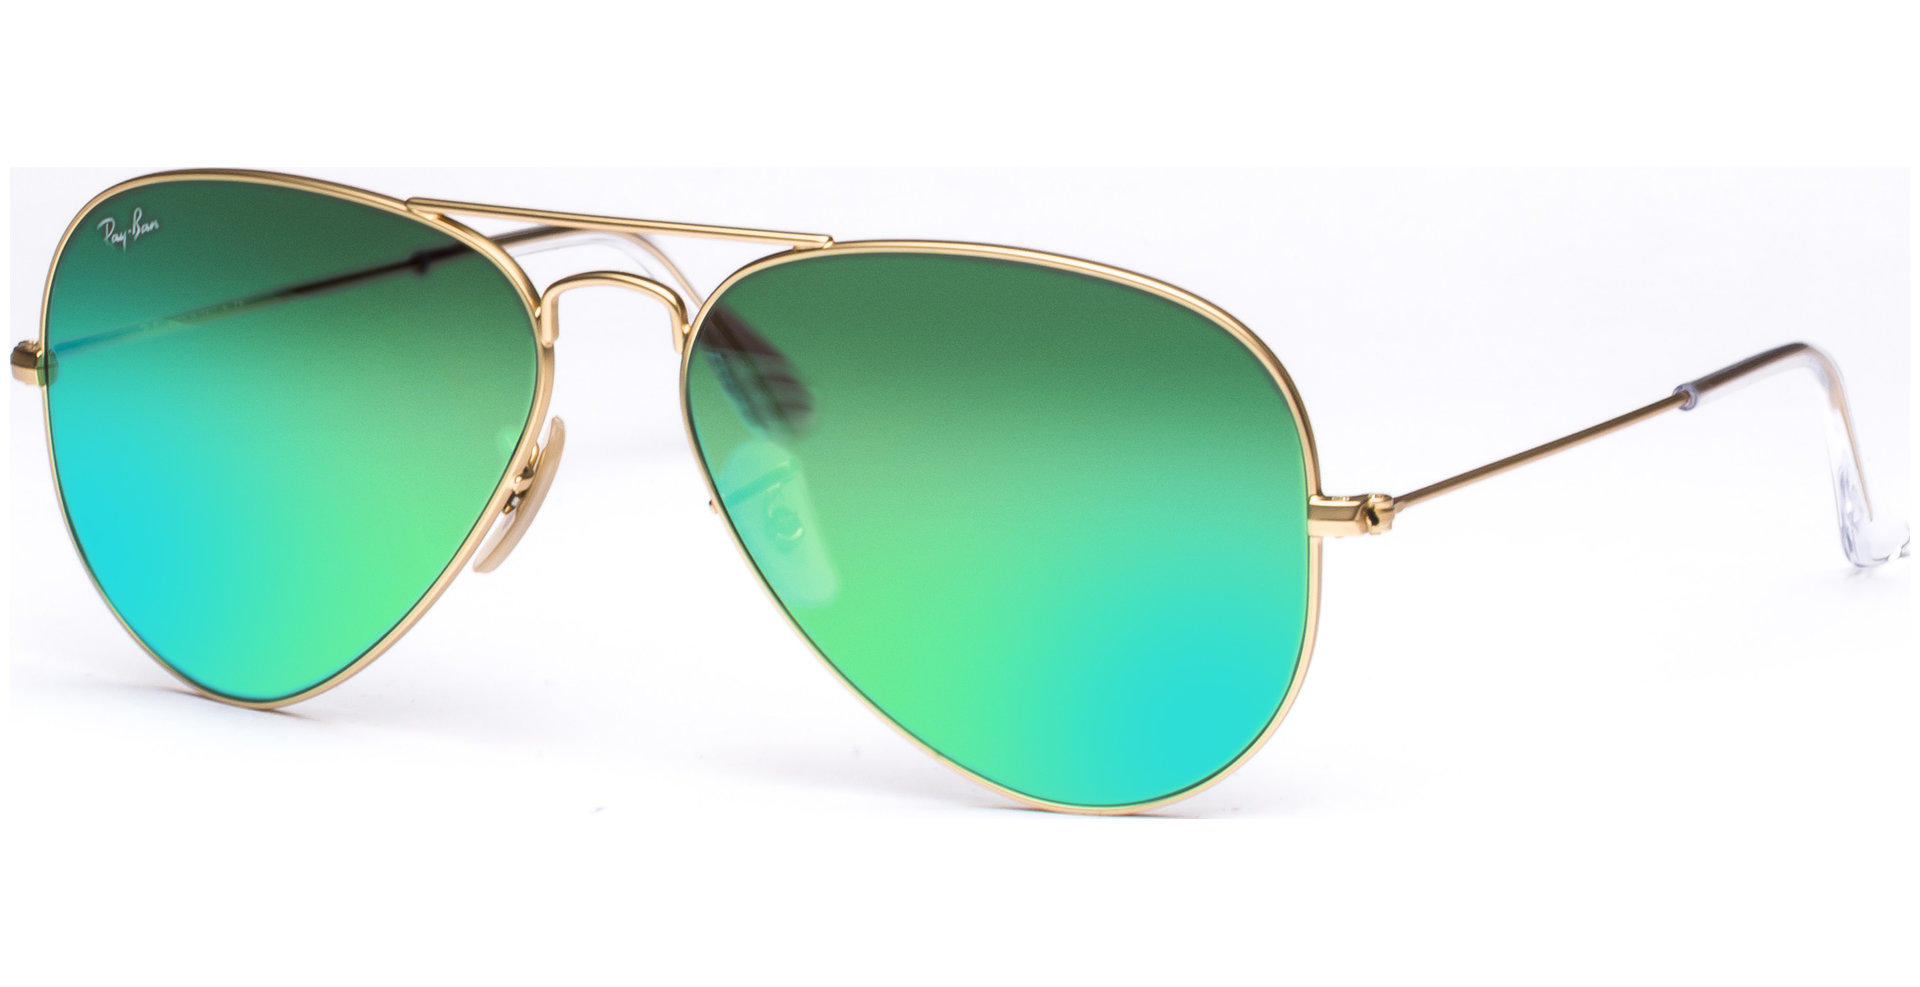 Ray-ban Aviator Large Metal RB3025 112 19 06933e1d4c5